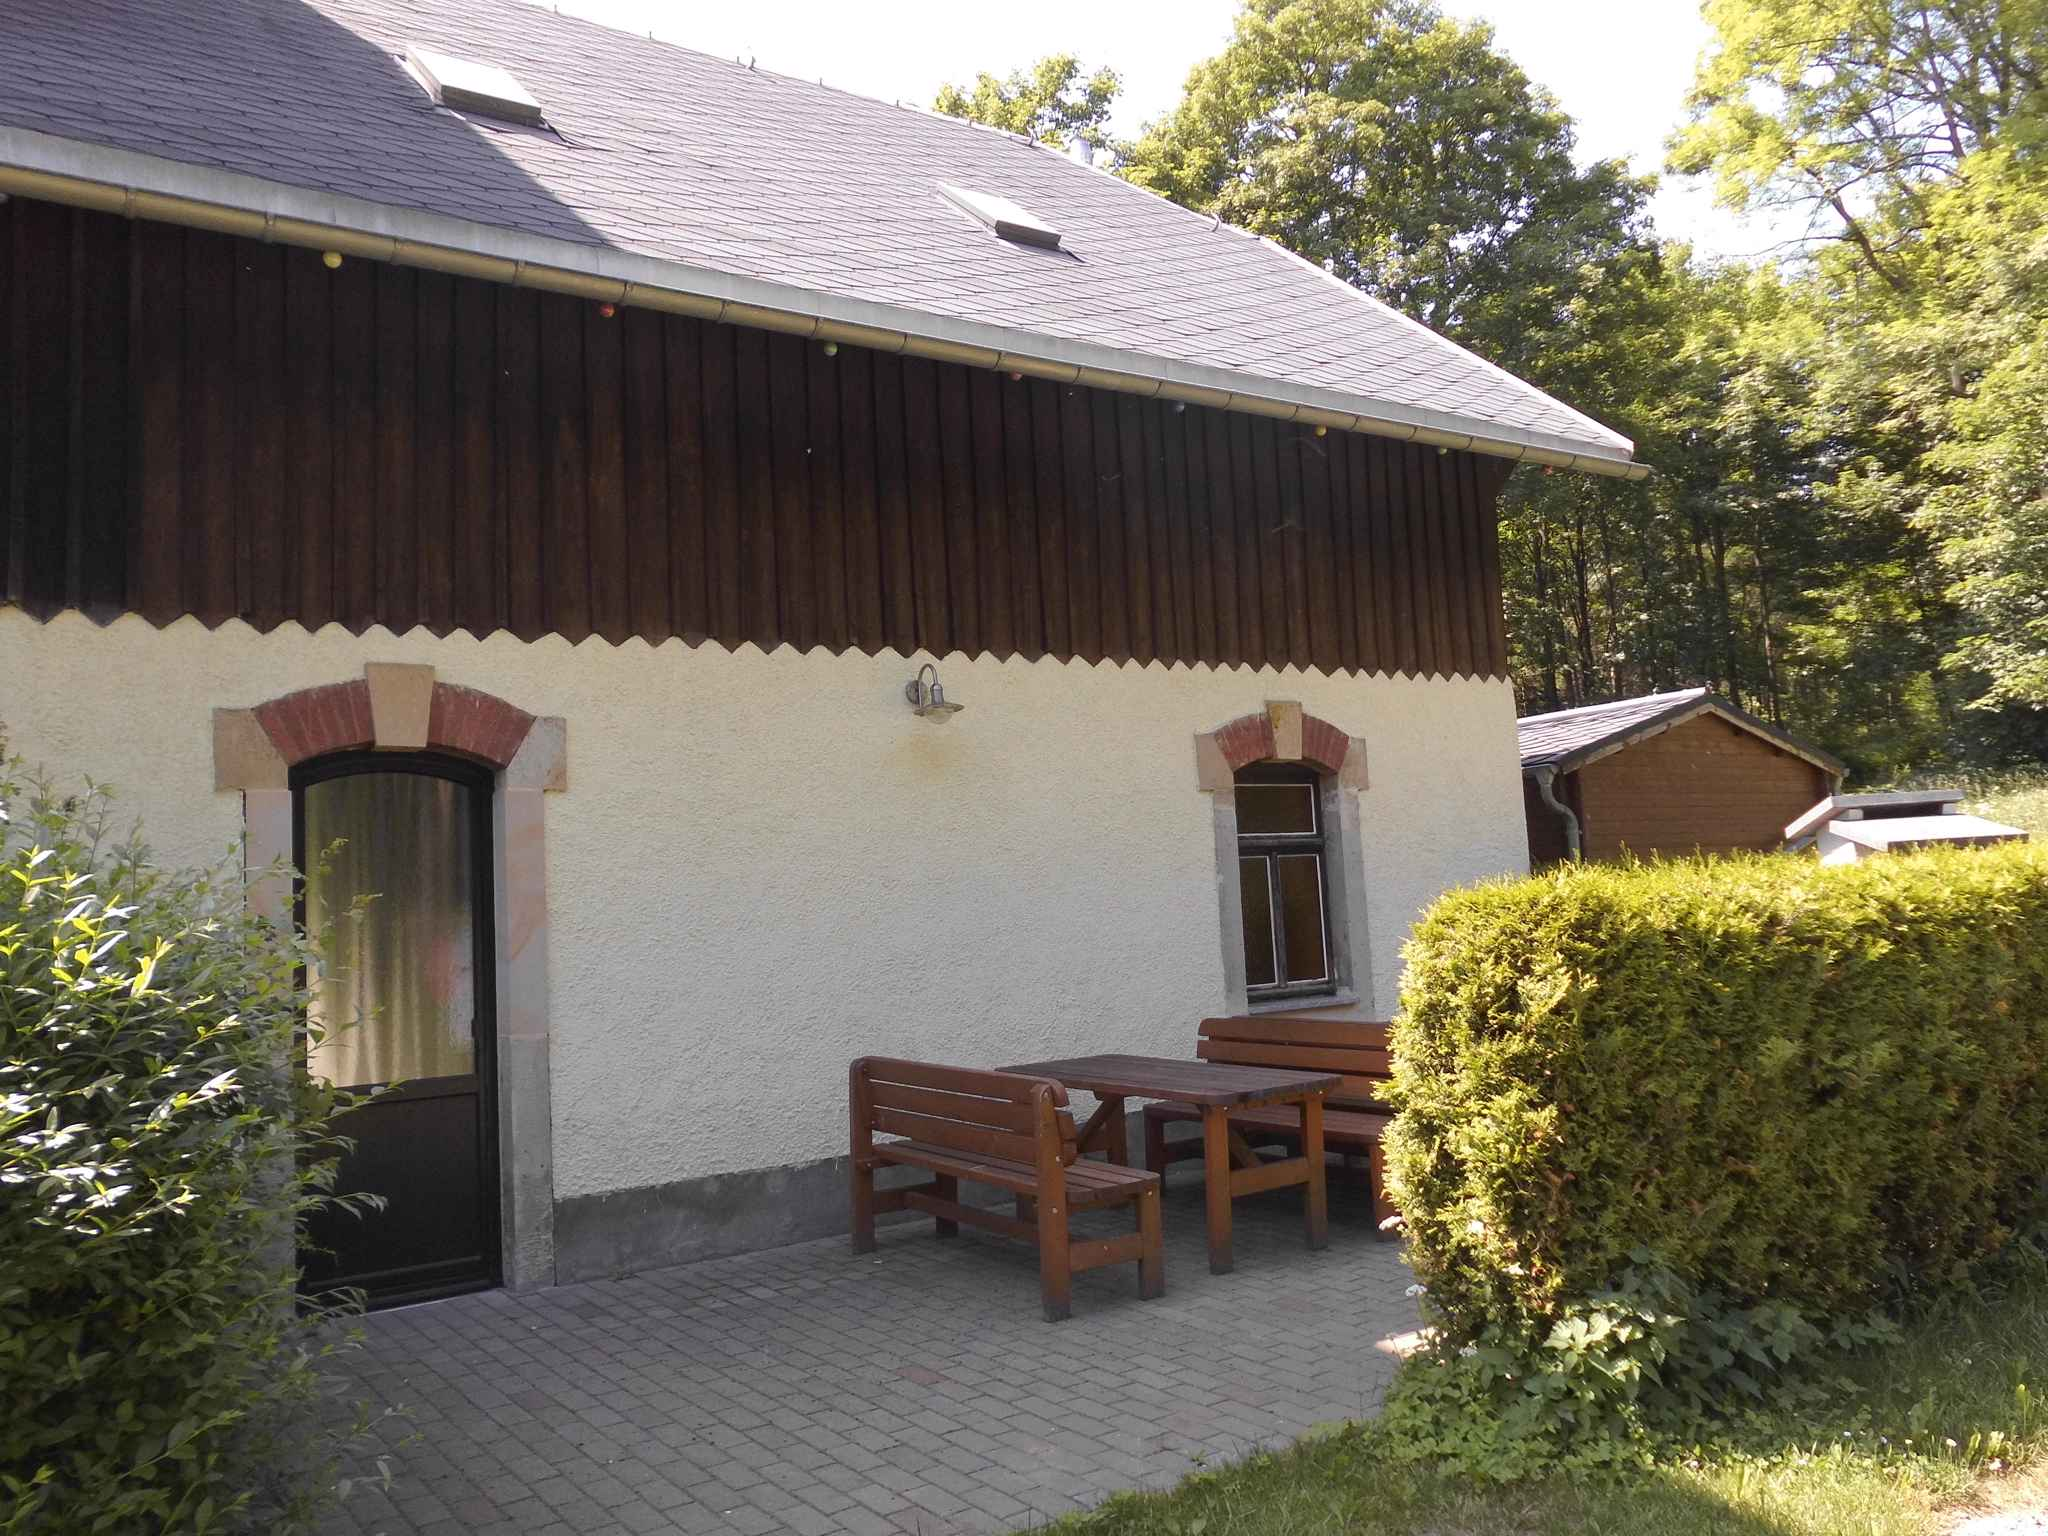 Holiday apartment in ruhiger Waldrandlage (322515), Sayda, The Ore Mountains, Saxony, Germany, picture 5